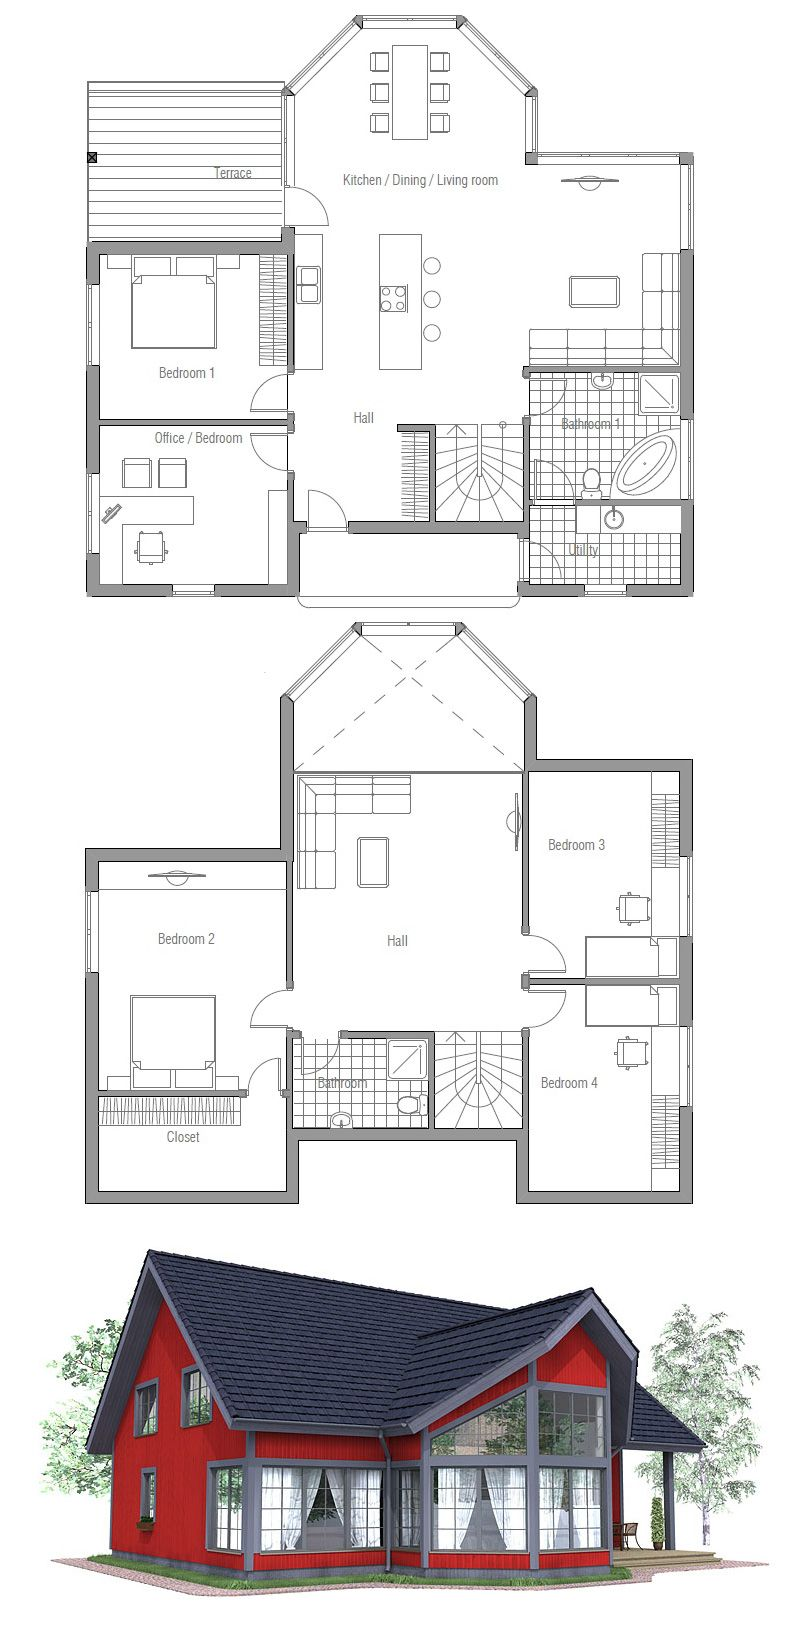 House Plan Ch90 Dream House Plans House Plans Small House Plans